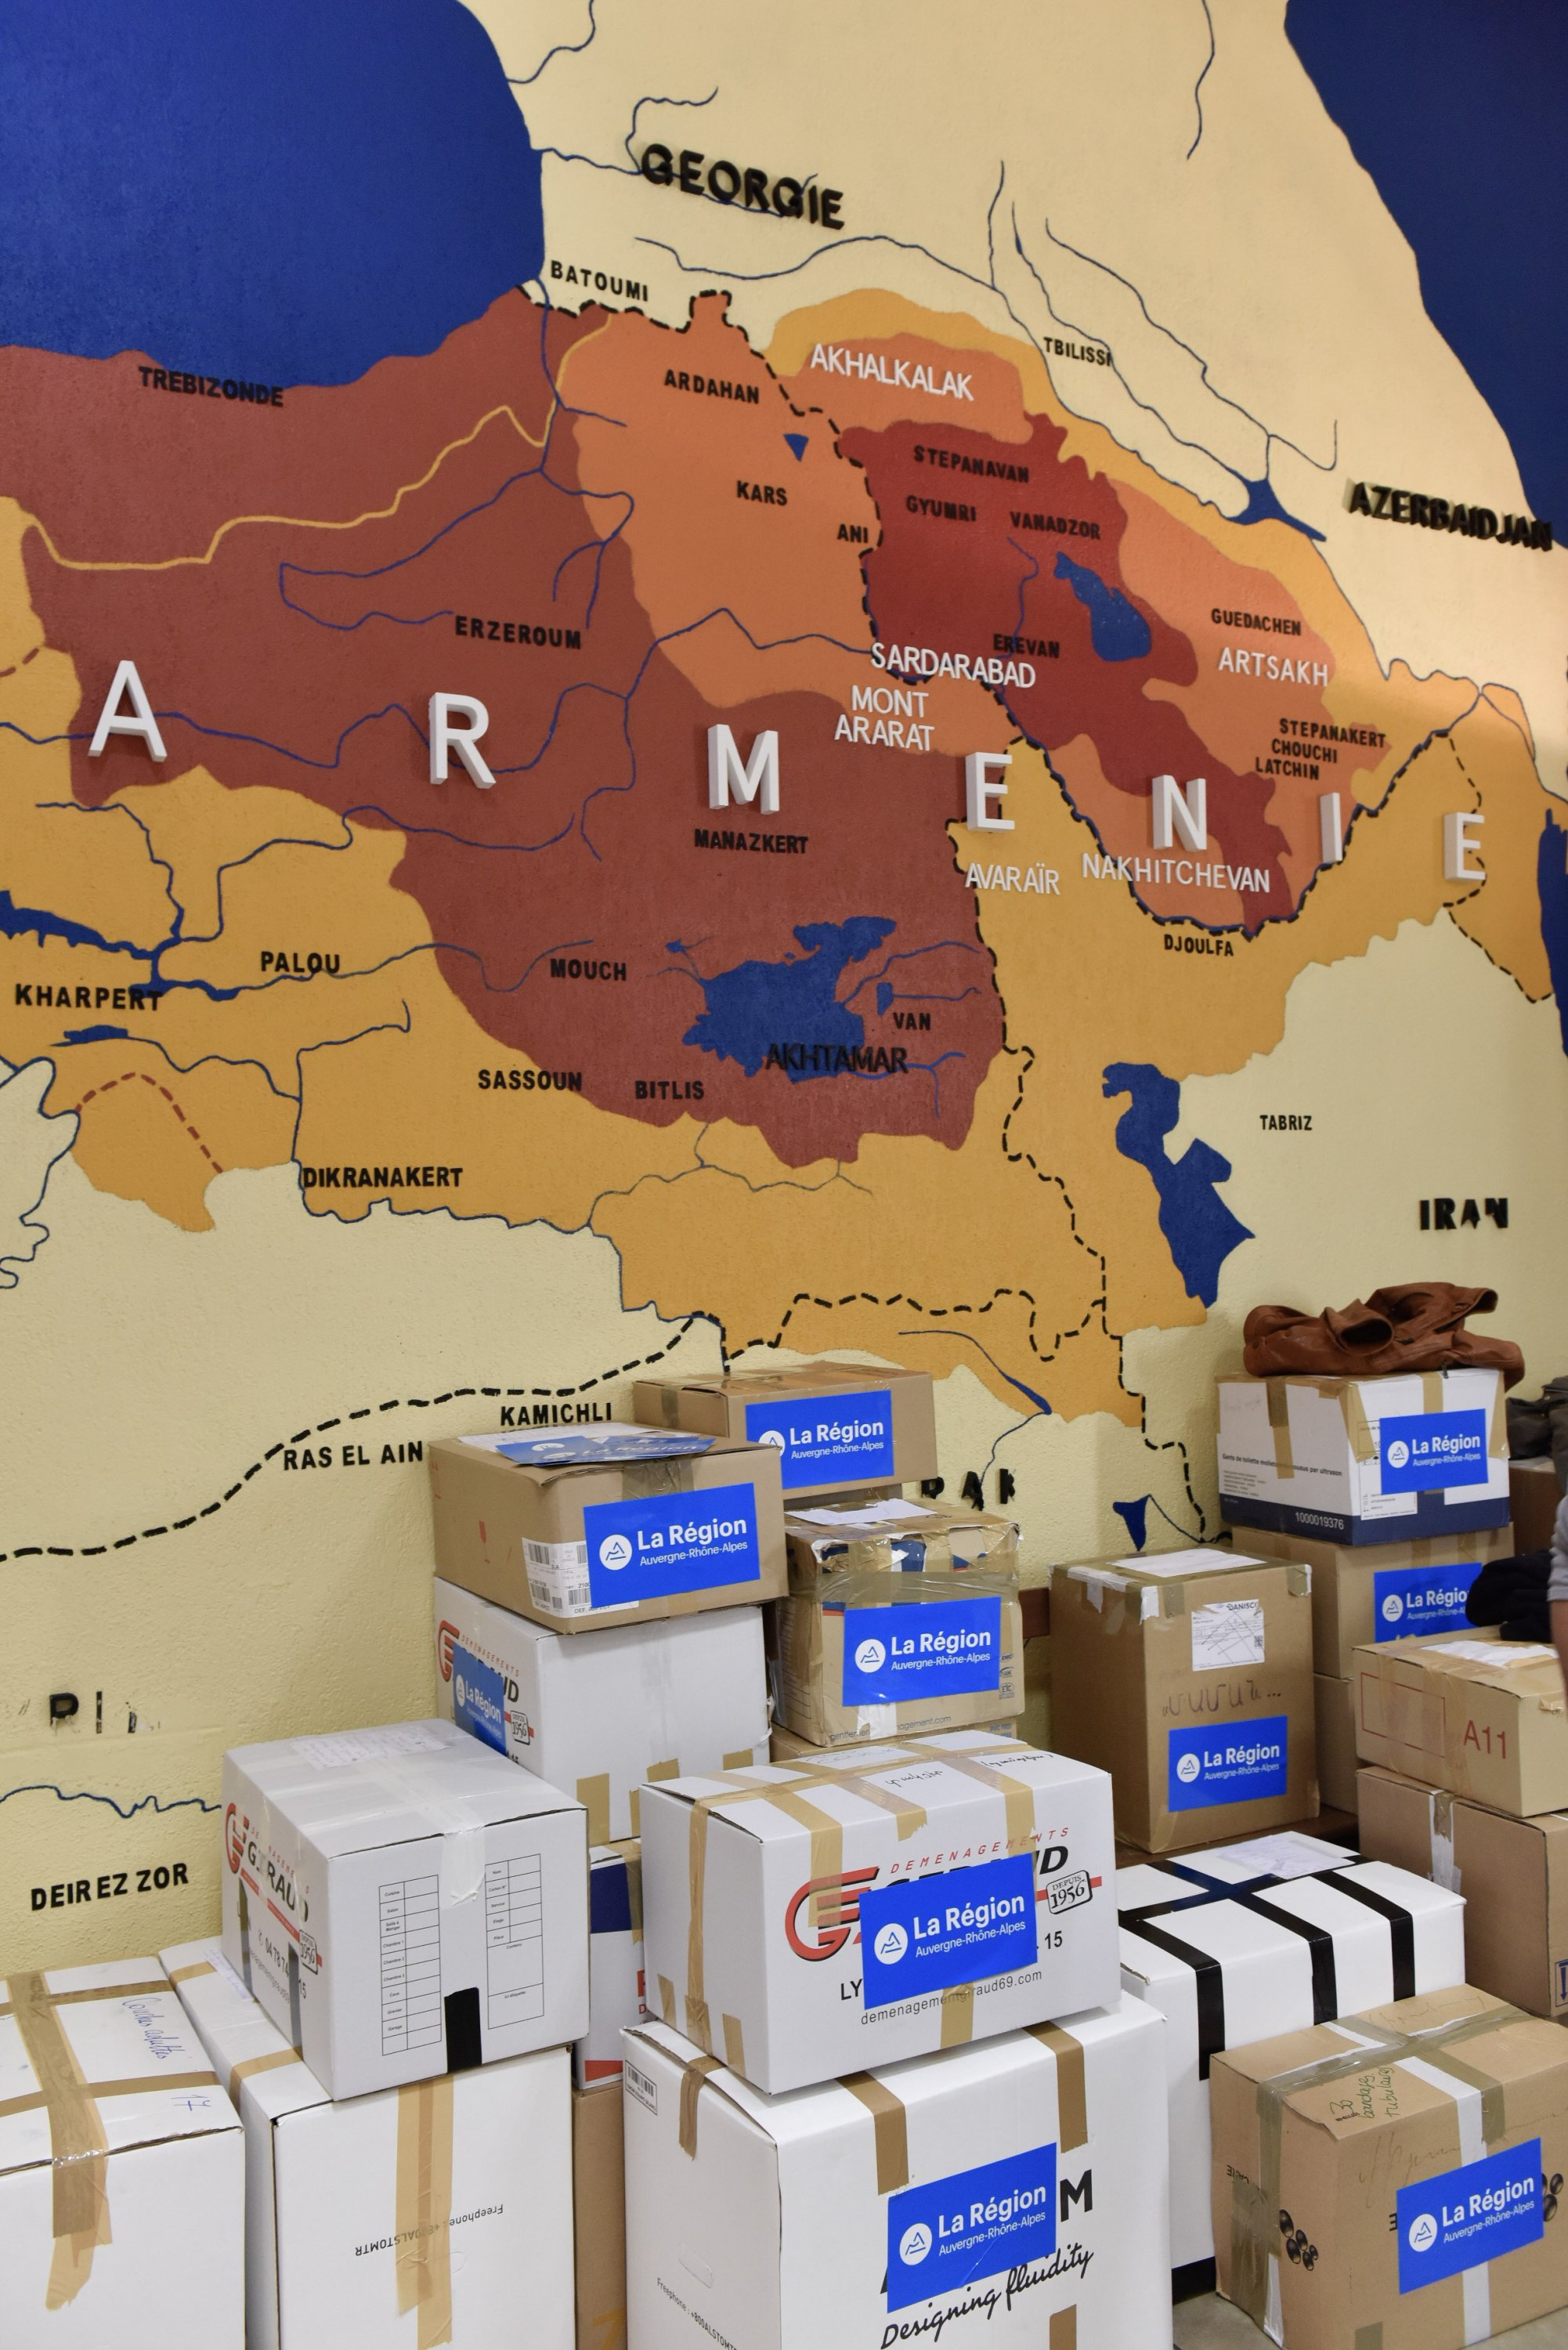 A map showing parts of eastern Turkey within the borders of Armenia is seen on a wall behind boxes of medical supplies at an event in the Auvergne-Rhone-Alpes region of France, in a photo shared Oct. 6, 2020. (Photo from Twitter @laurentwauquiez)